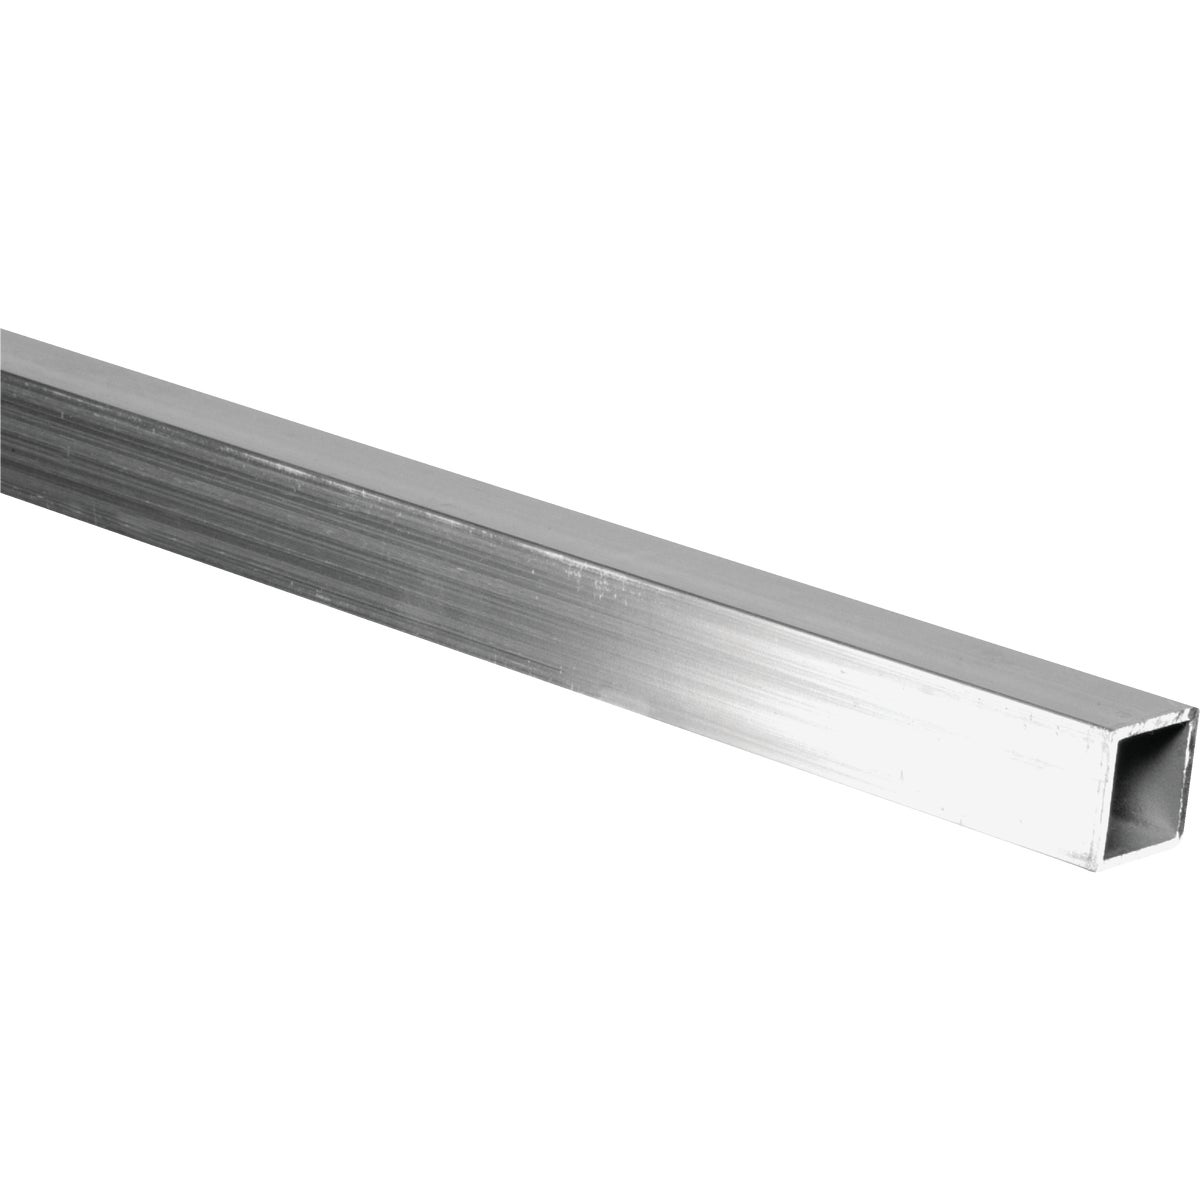 1X4' ALUM SQUARE TUBE - N247619 by National Mfg Co